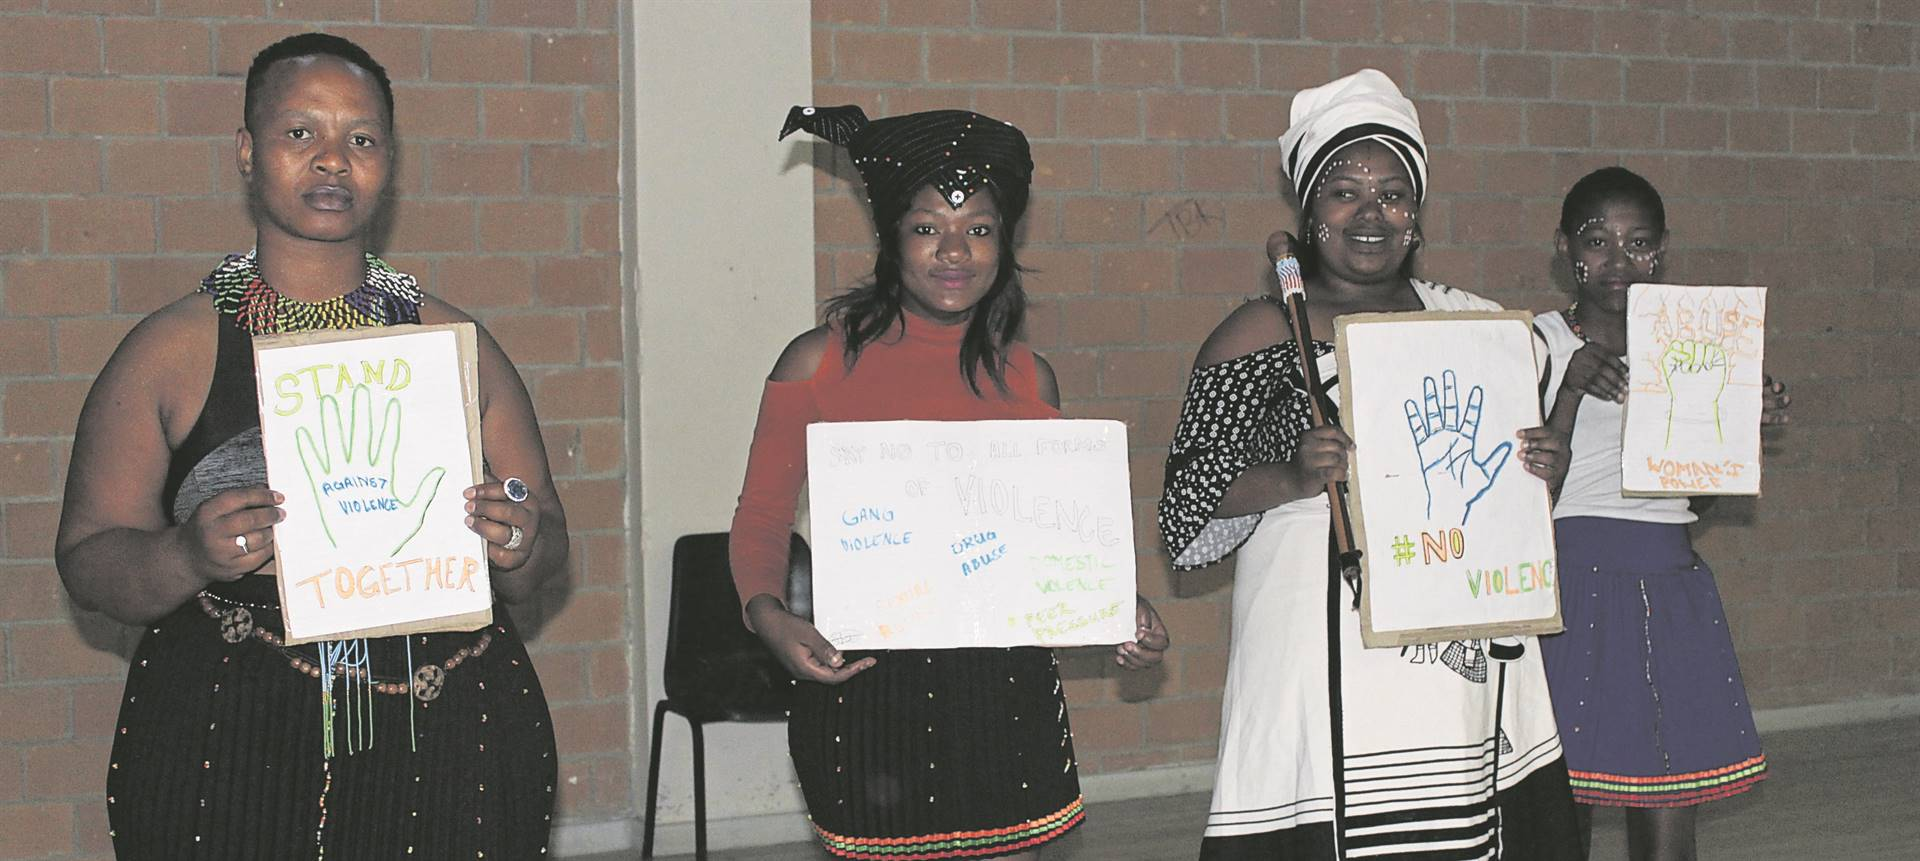 Nwabisa Baartman, Khanyiswa Hulana, Nontsikelelo Maphongwana and Bukiwe Wayiwayi used the Heritage Day celebrations at Nomzamo Community Hall to show support for the countrywide campaign against the abuse of women and children. The four stood on stage with posters displaying messages focused on this issue affecting people across the country.PHOTOS: MZWANELE MKALIPI